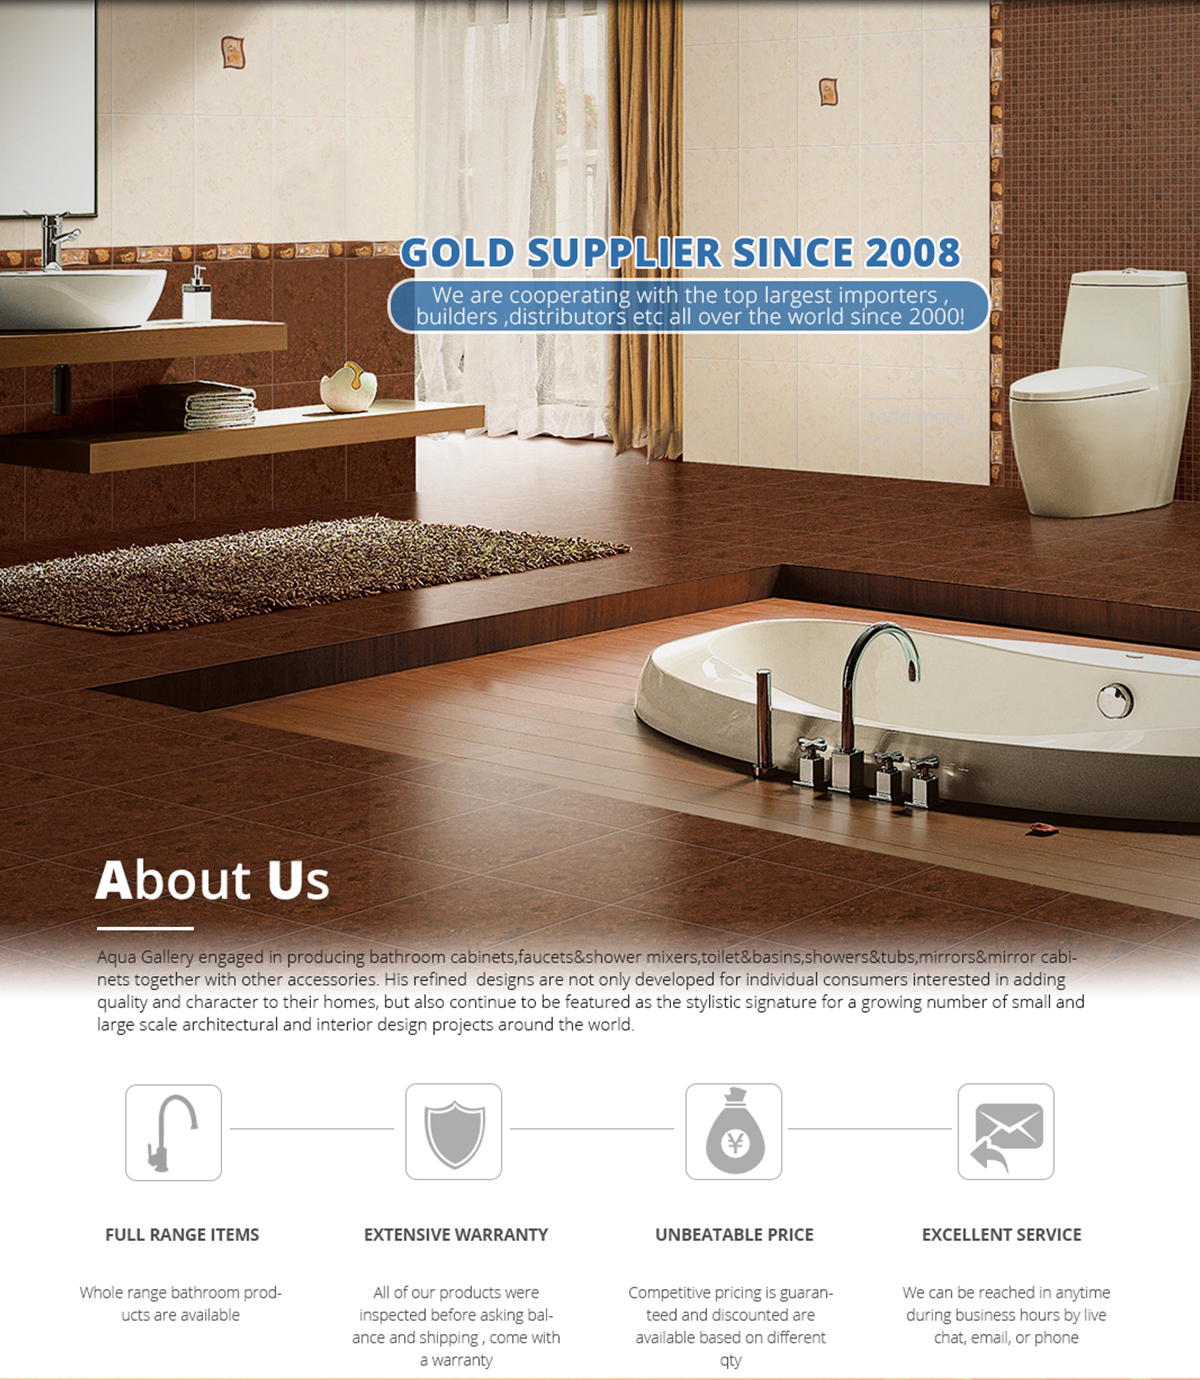 Foshan Aqua Gallery Co., Ltd. - Bathroom Cabinet, Faucets&Shower Mixers